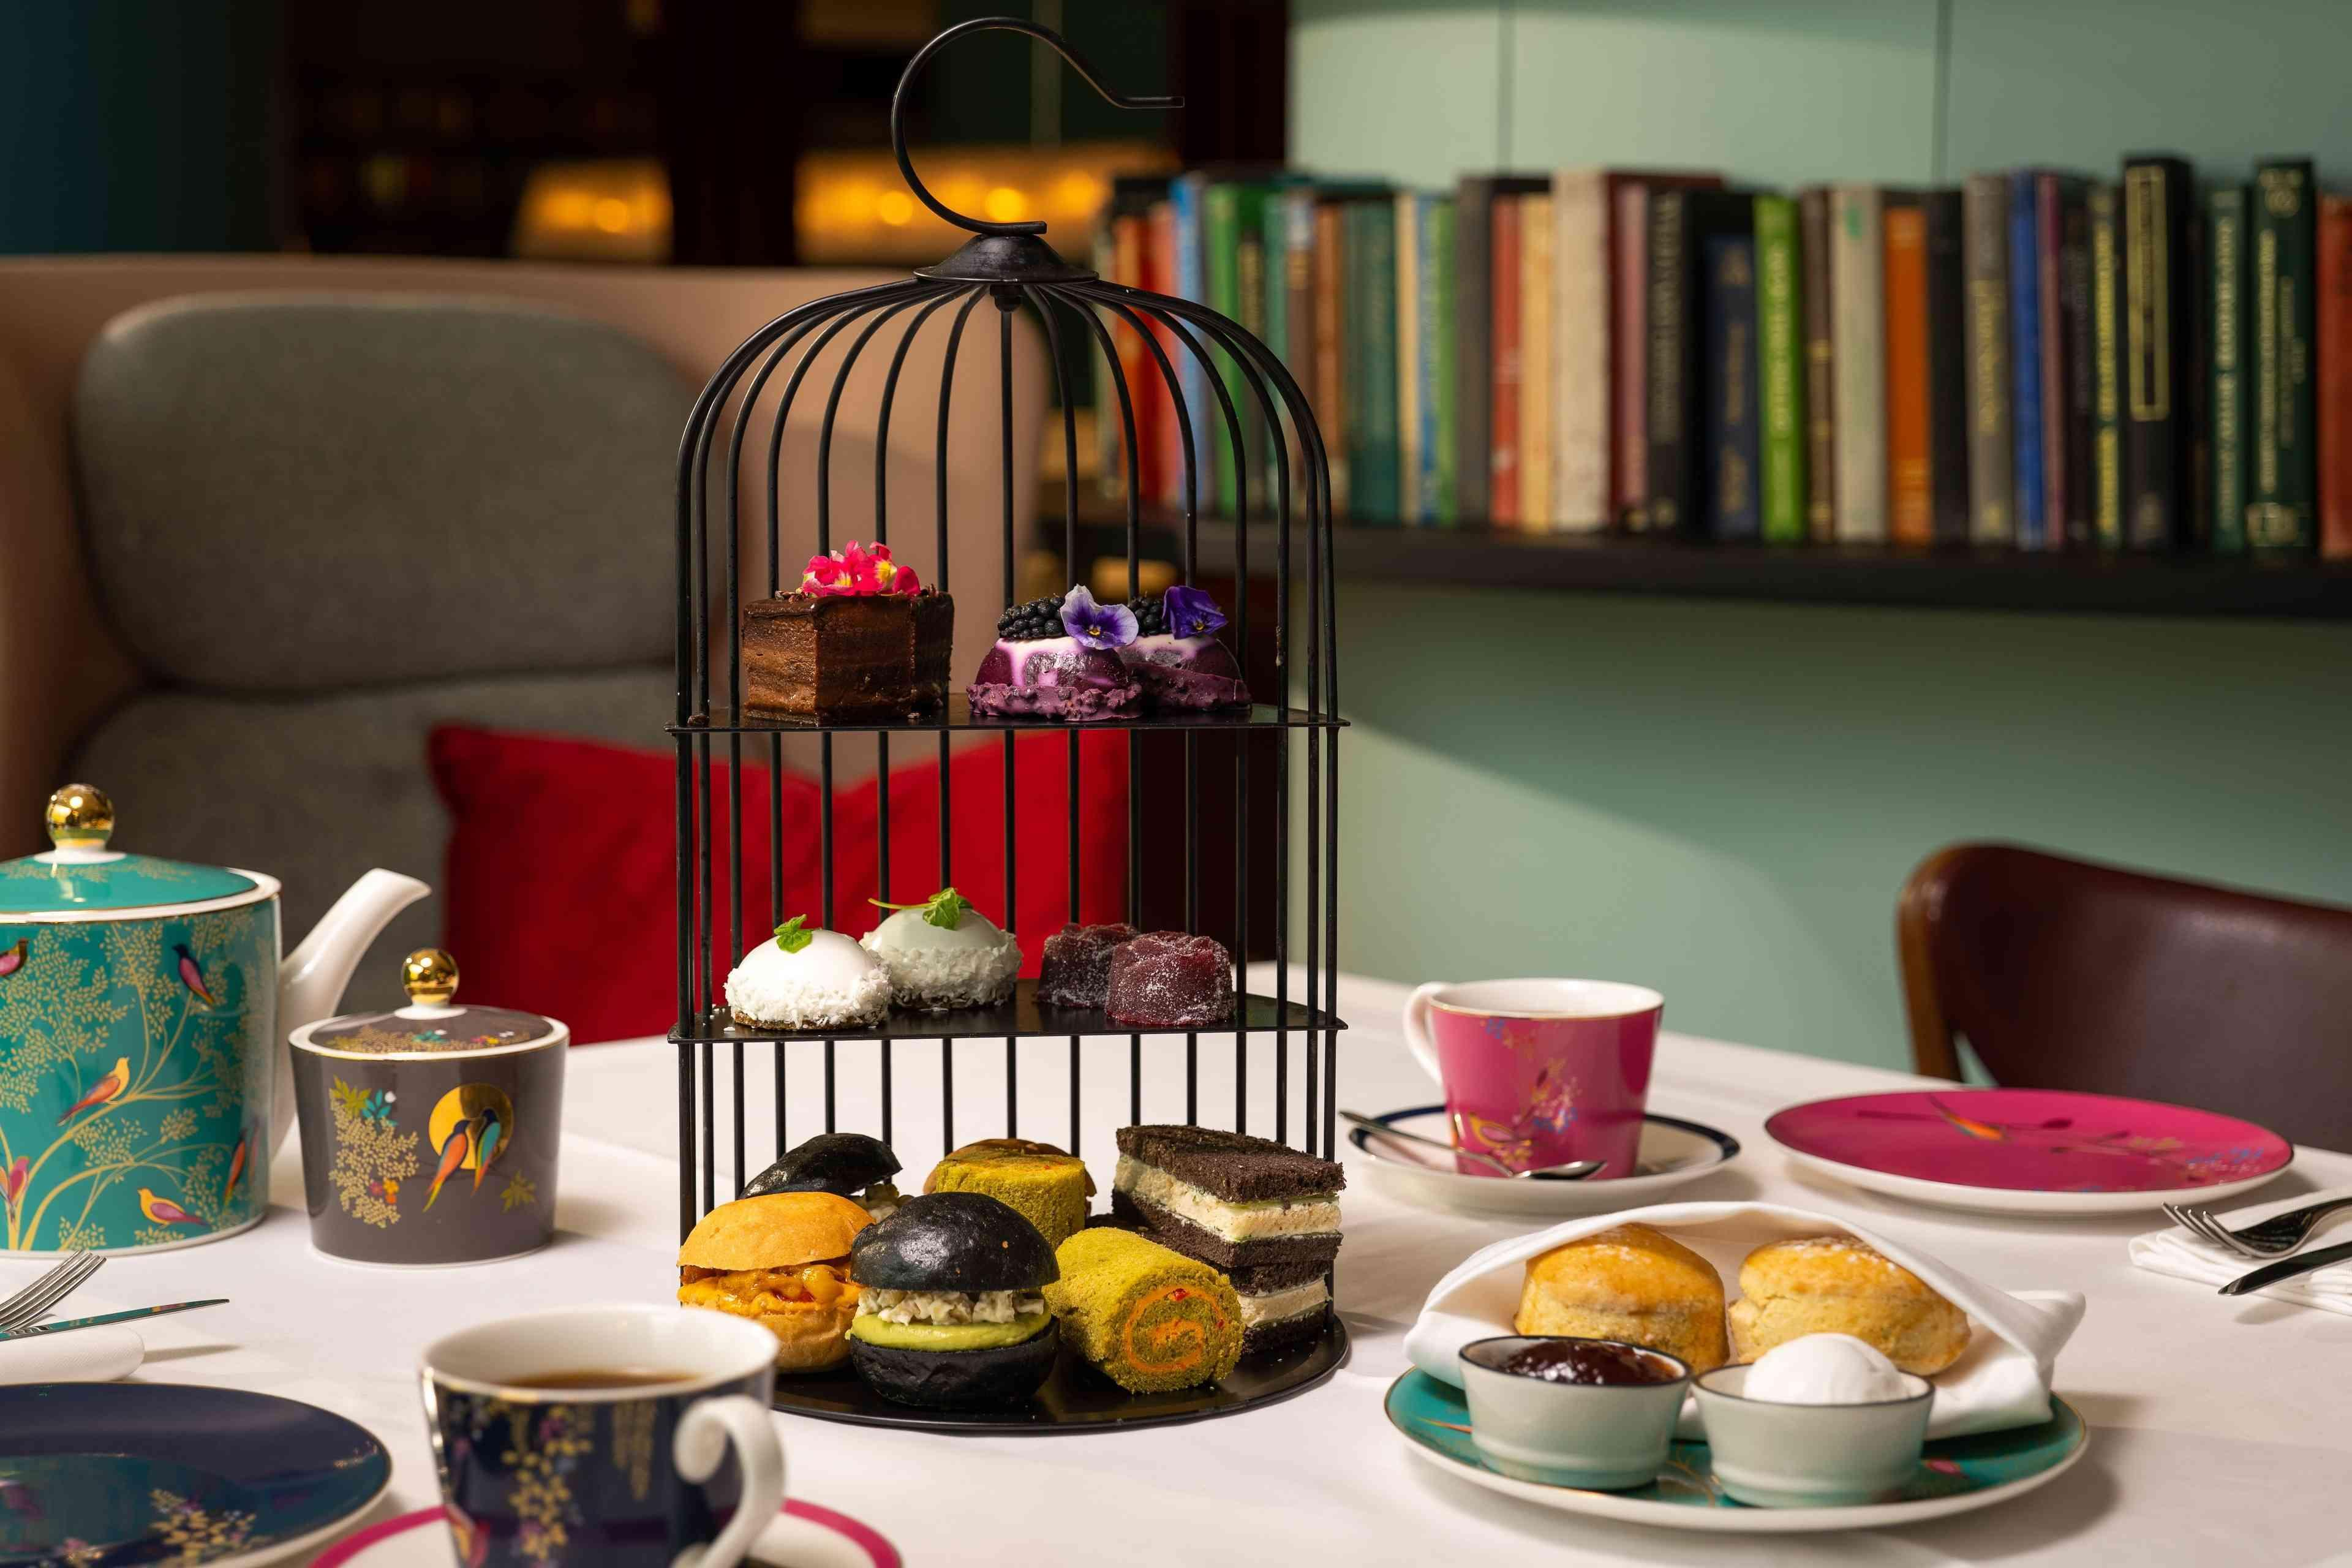 Desserts displayed in black cage on table with tea cups